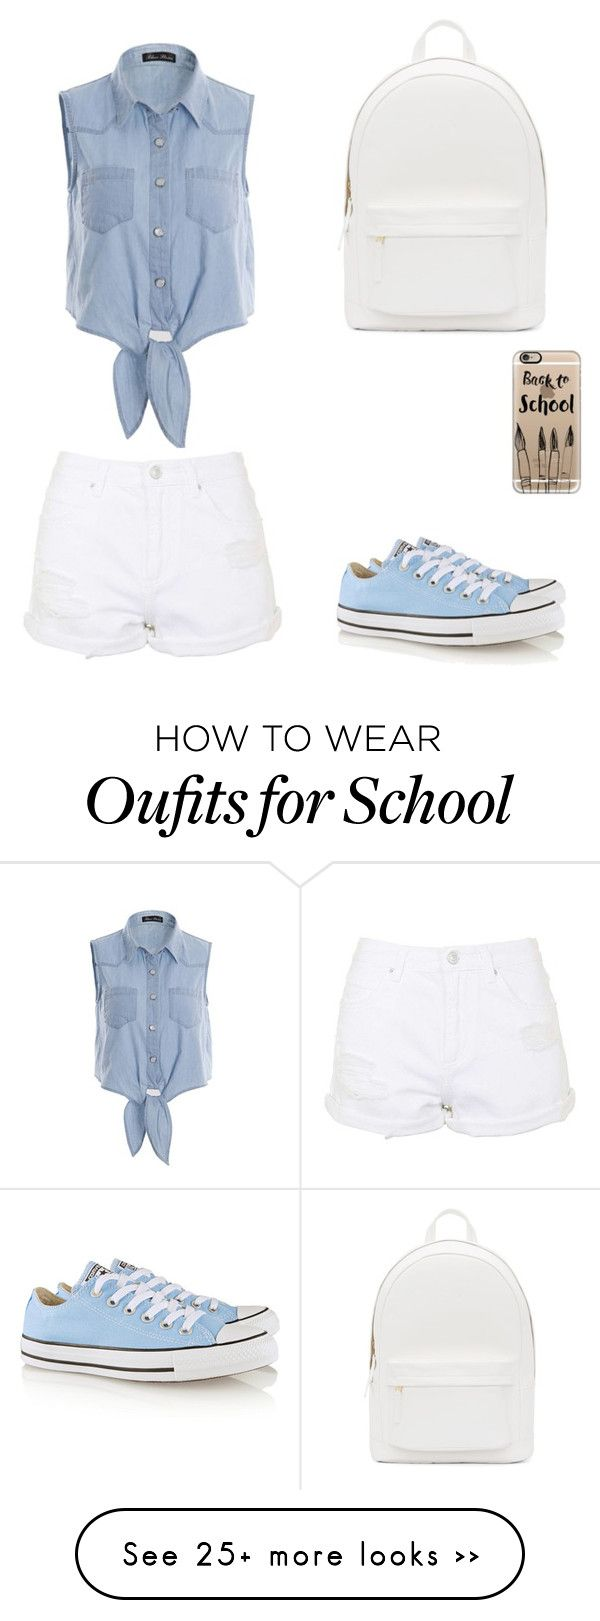 """""""Back to school """" by elizuyen on Polyvore featuring PB 0110, Topshop, Converse and Casetify"""